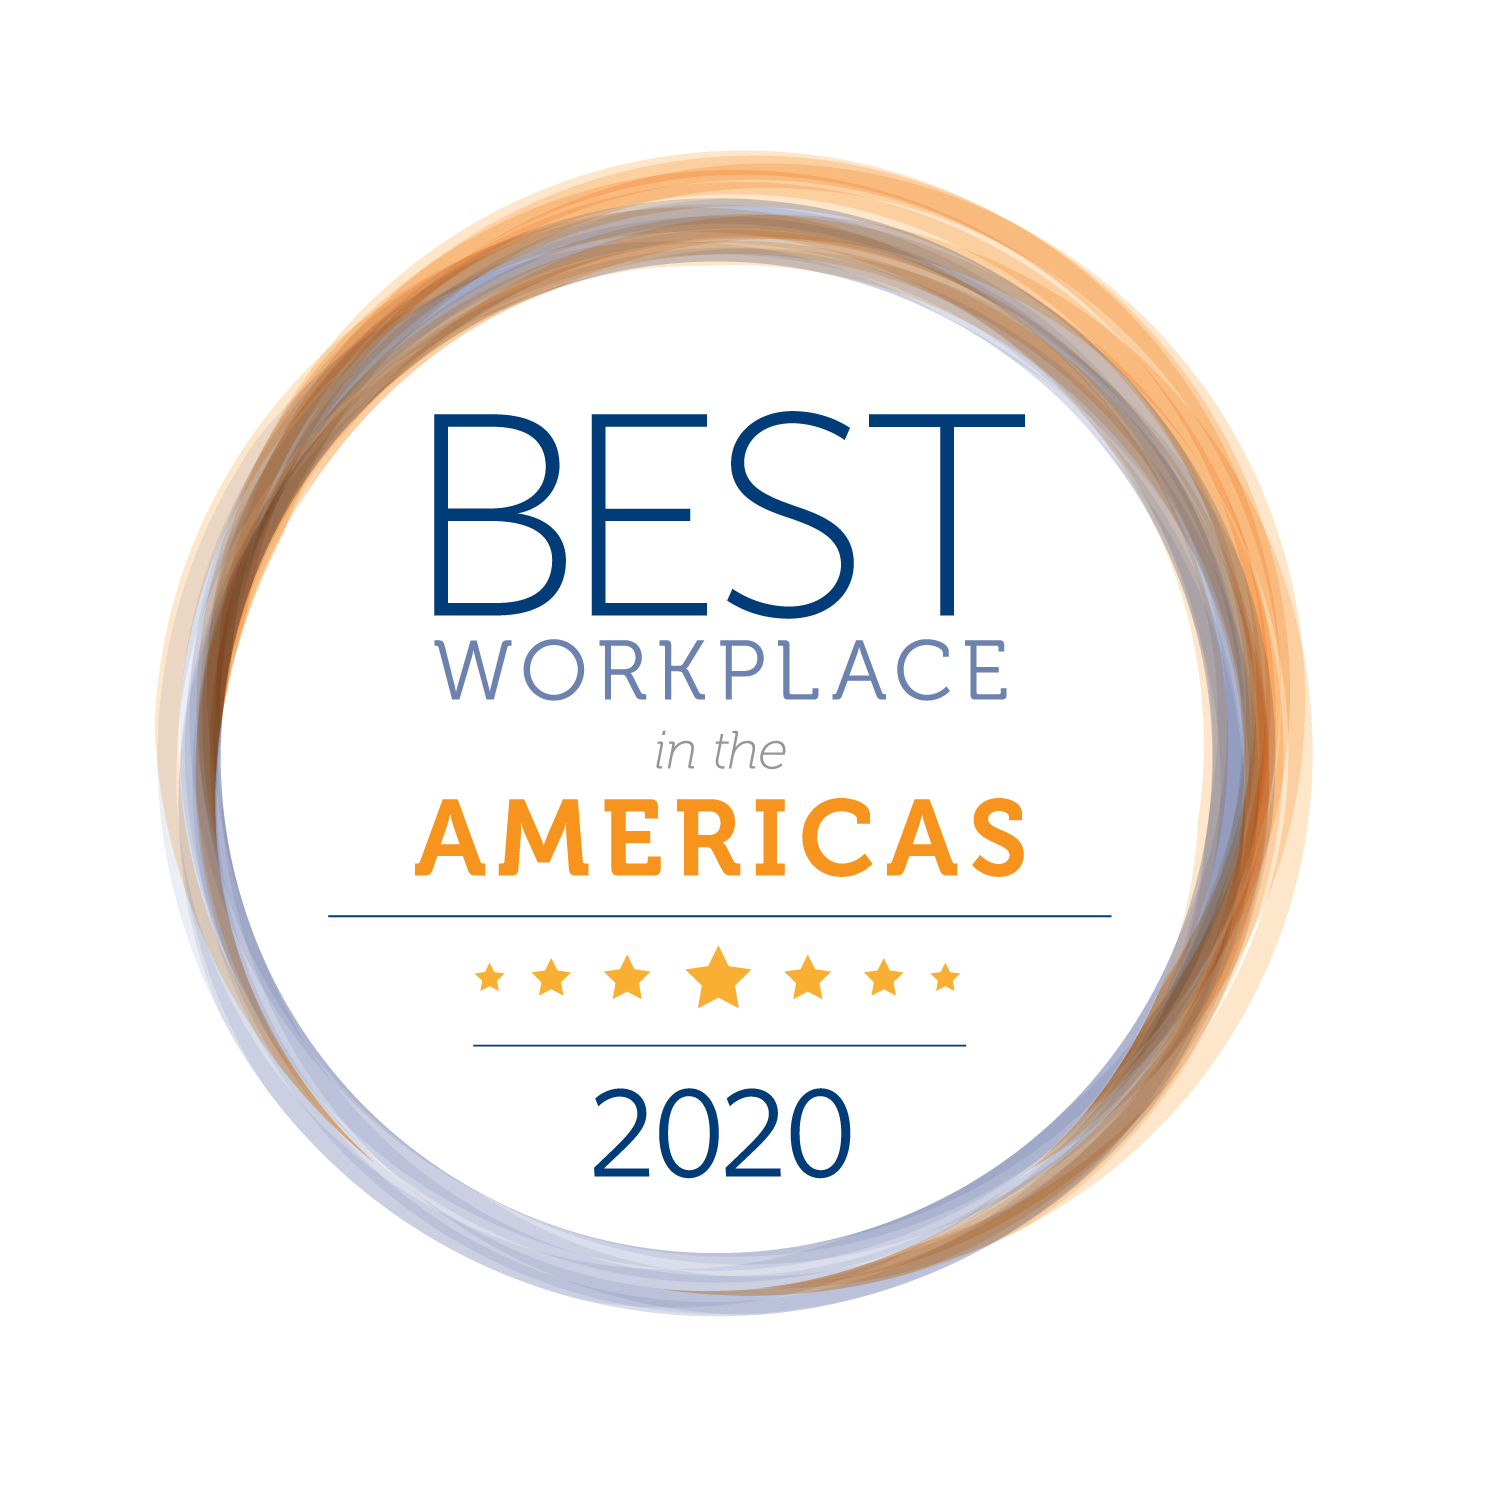 2020 Best Workplace in the Americas Awards